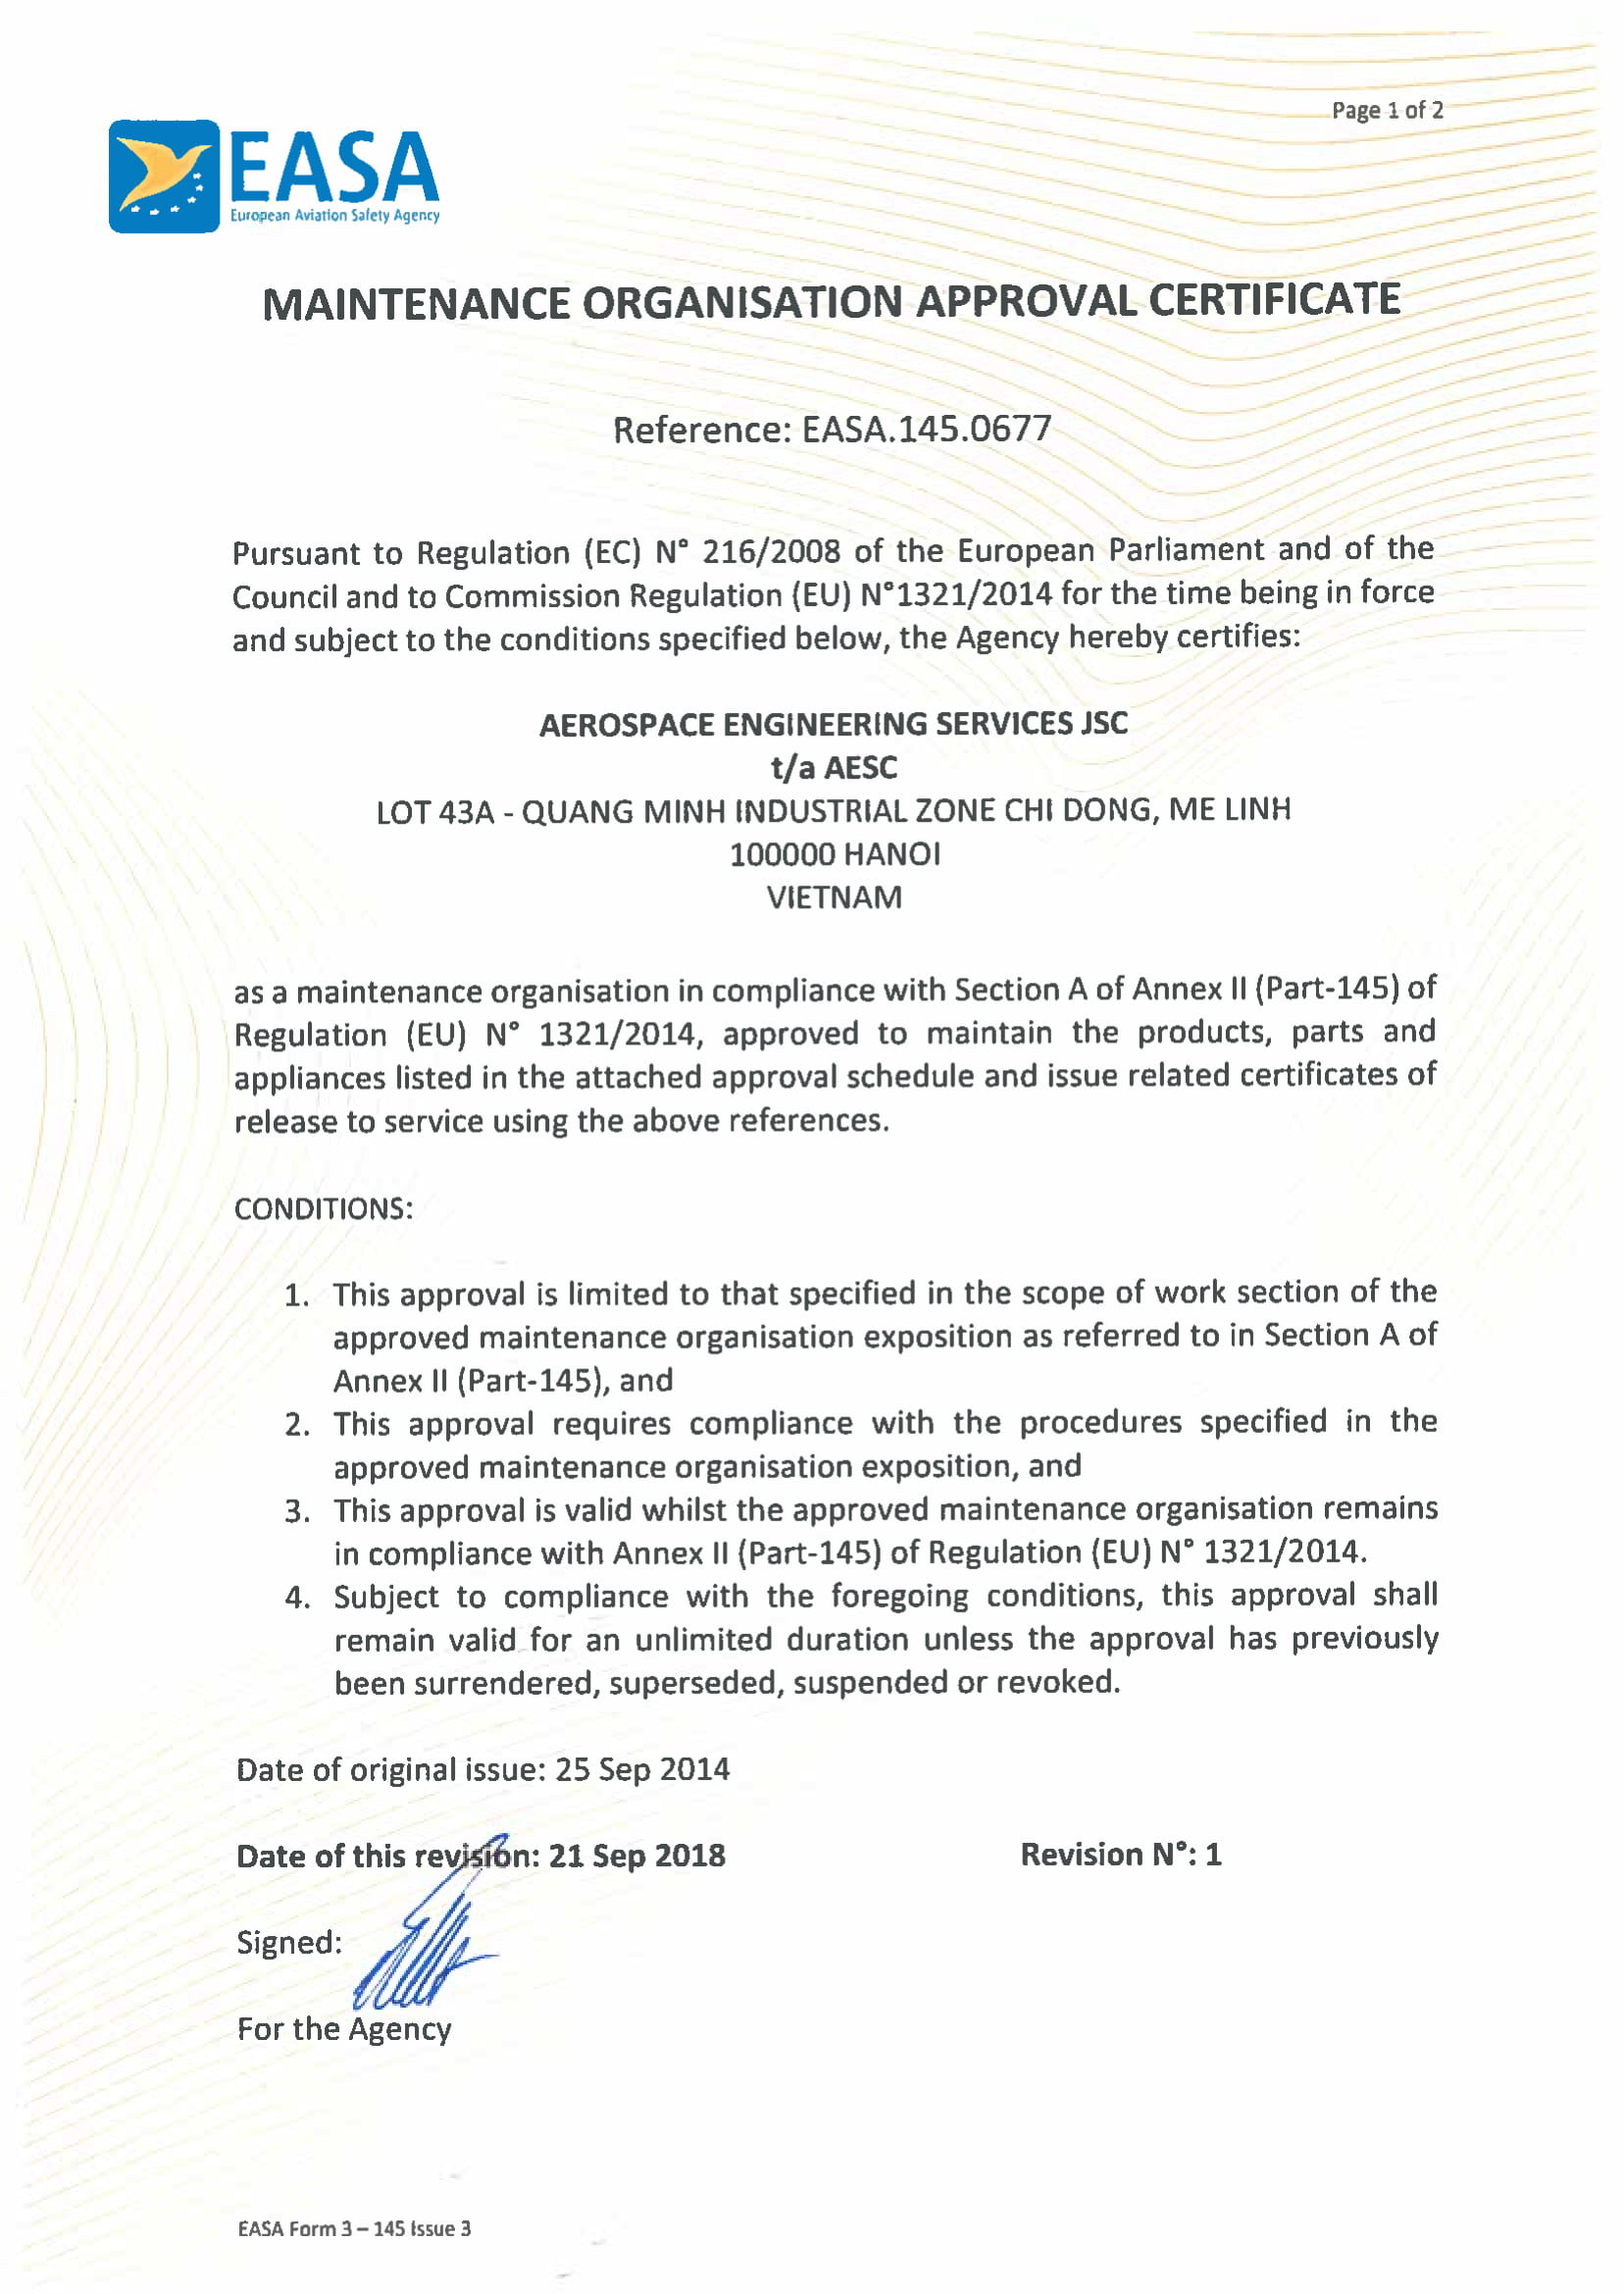 EASA Maintenance Organization Approval Certificate